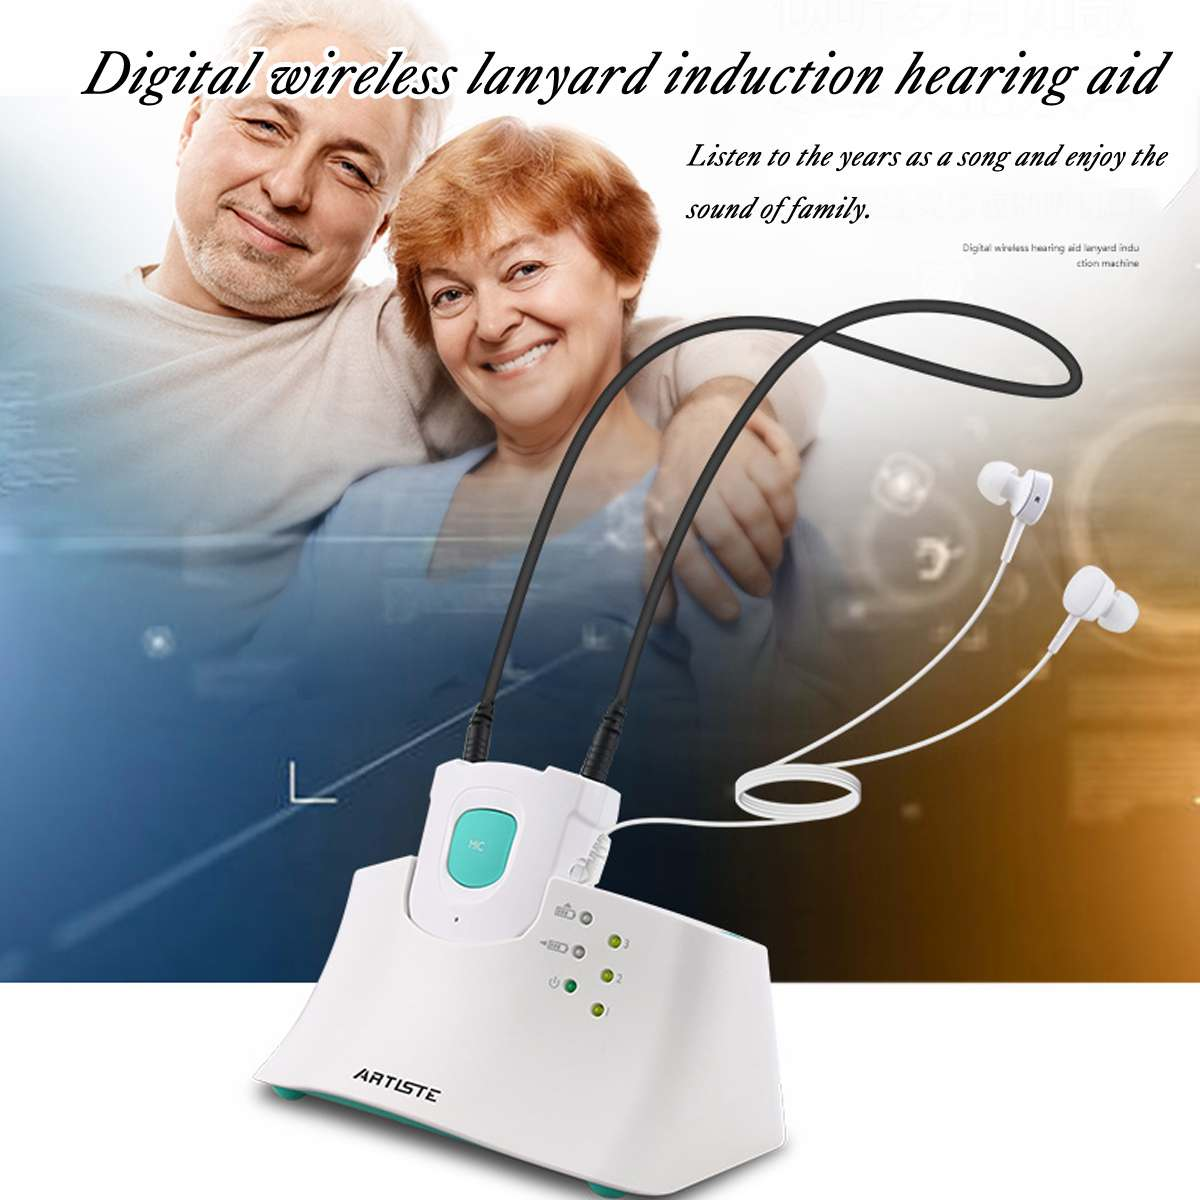 2.4GHz TV Hearing Aid Earphone Universal Wireless Hearing Aid Headset System TV/Media Rechargeable Assistive Listening Headset2.4GHz TV Hearing Aid Earphone Universal Wireless Hearing Aid Headset System TV/Media Rechargeable Assistive Listening Headset